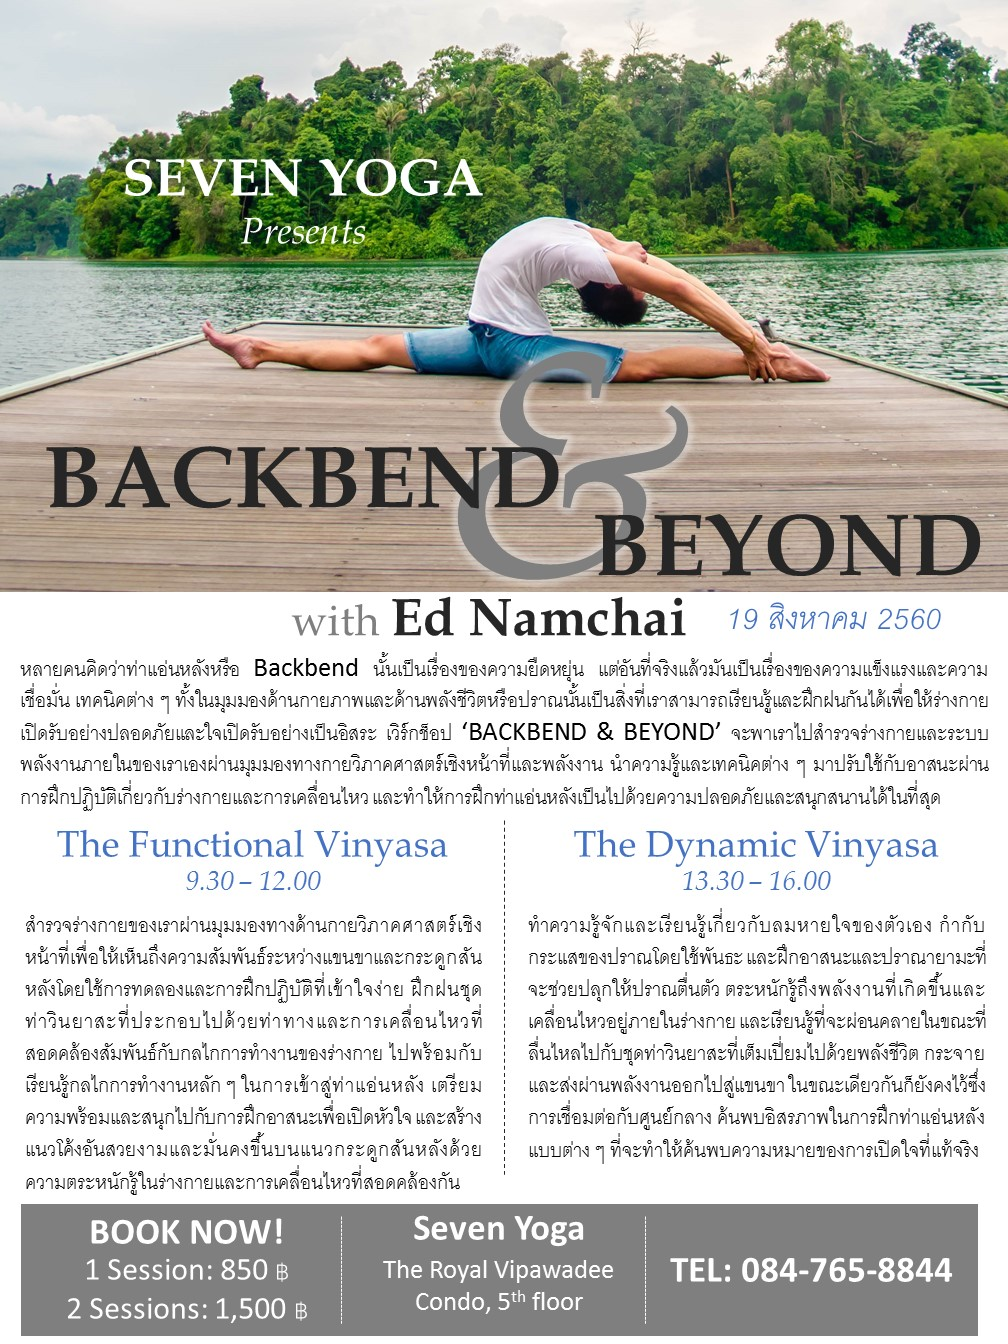 Backbend & Beyond with Ed Namchai